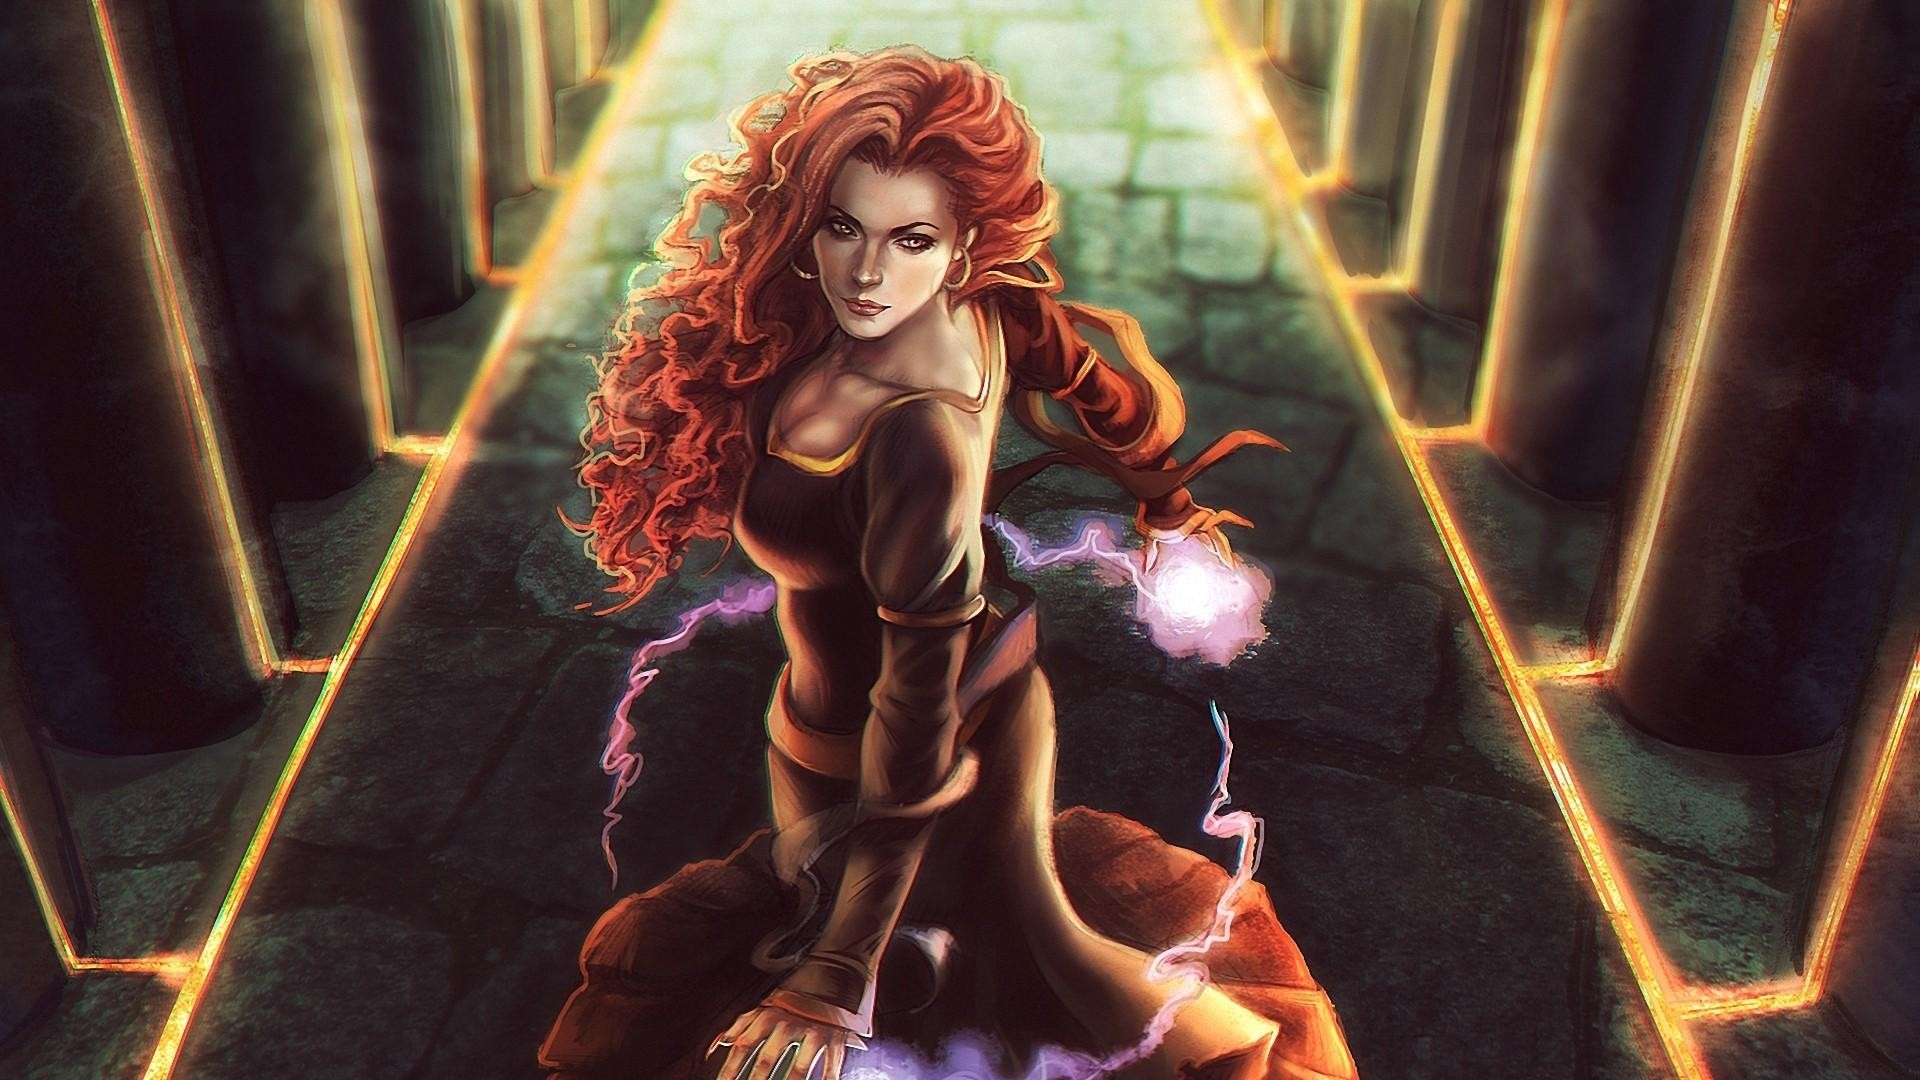 Res: 1920x1080, Download now full hd wallpaper triss merigold red head luxury spell  beautiful ...